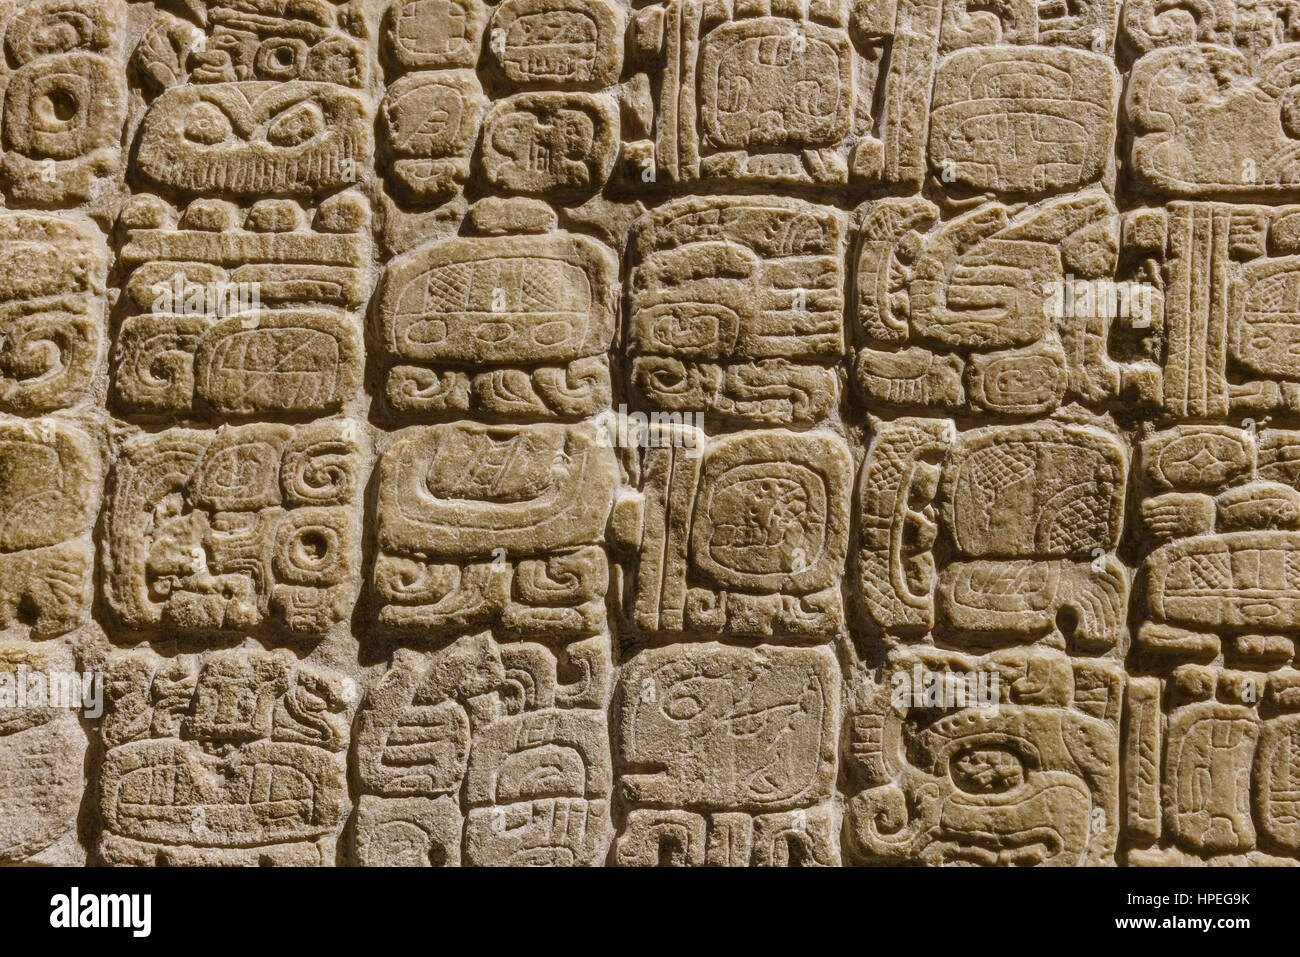 Mexico City, FEB 16: National Museum of Anthropology (Museo Nacional de Antropologia, MNA) on FEB 16, 2017 at Mexico - Stock Image